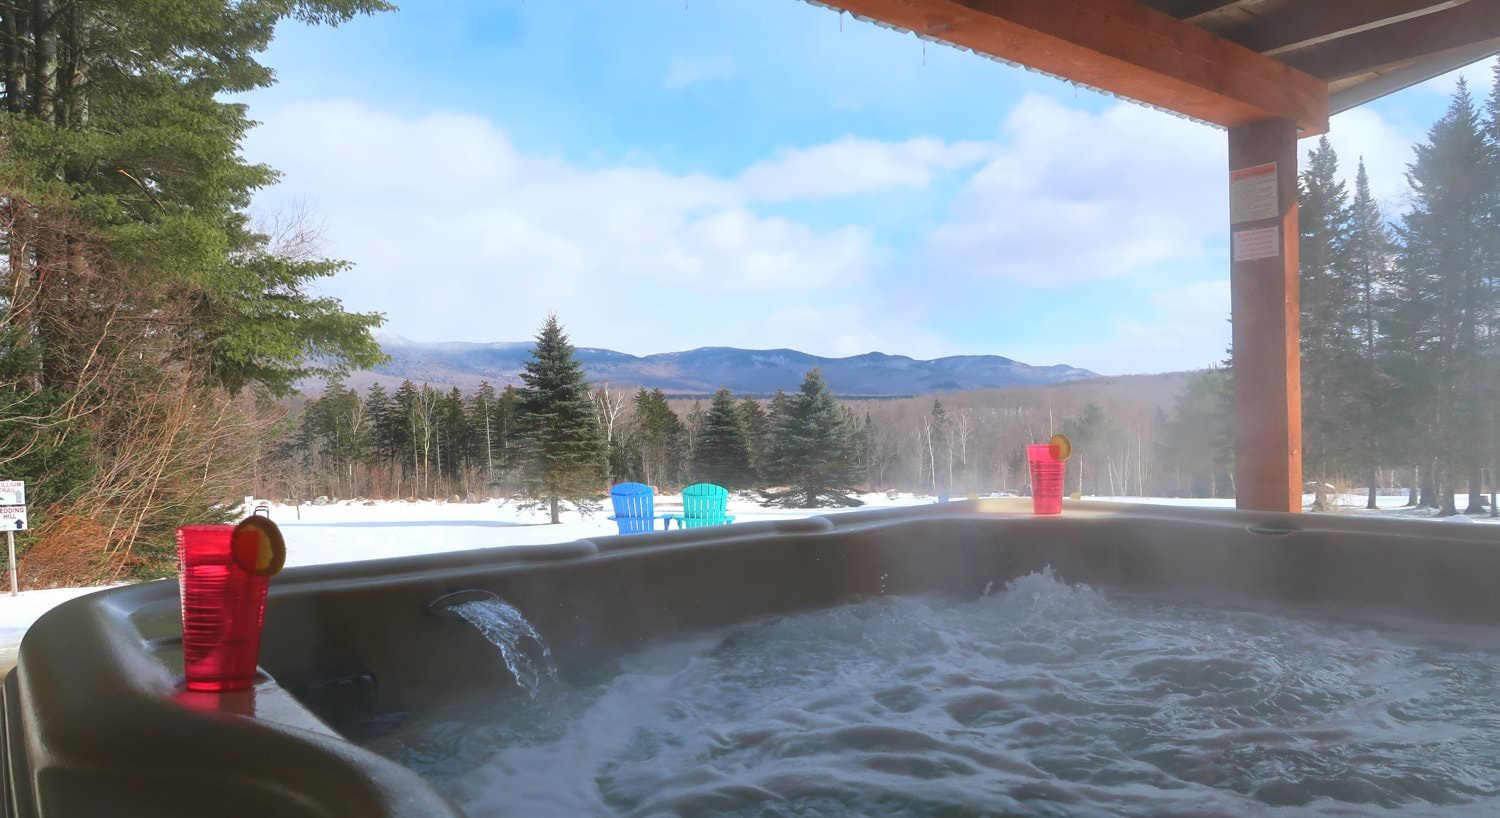 View from bubbling hot tub of snow-covered ground and trees and hills in the background